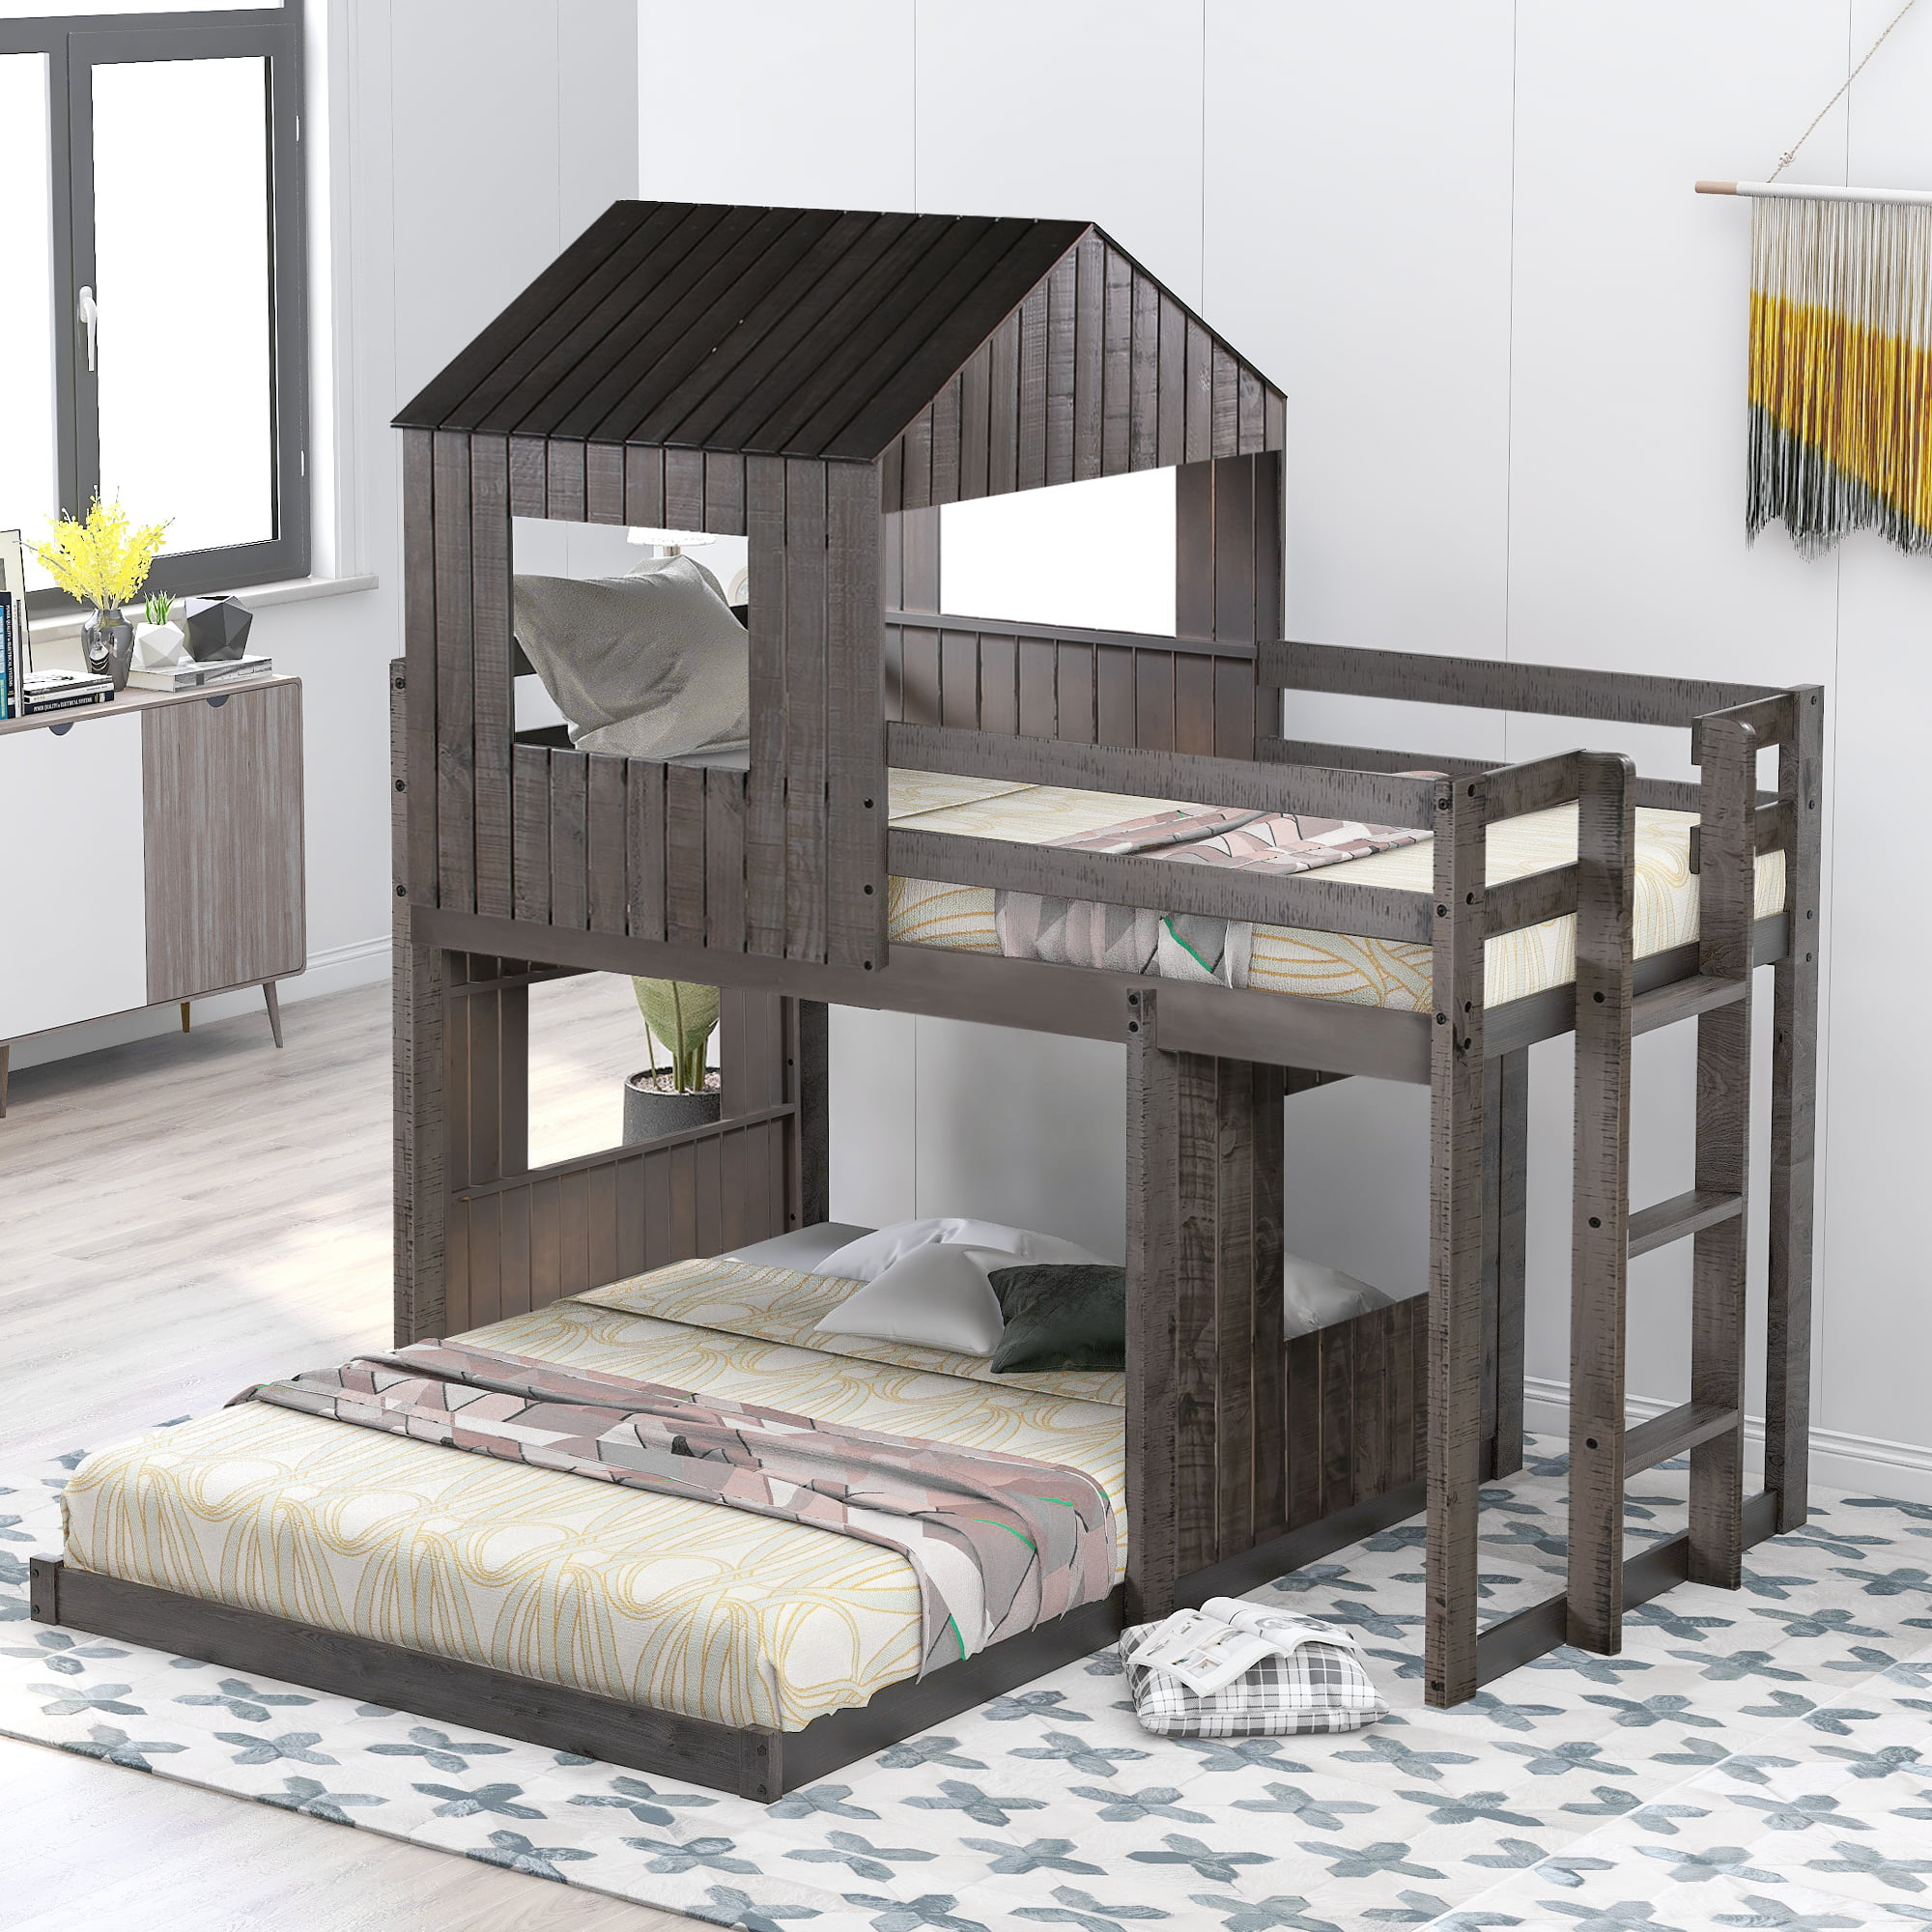 Picture of: Twin Over Full Bunk Beds Wood Twin Over Full Loft Bed Twin Over Full Bunk Bed For Kid Toddlers Girls Boys Bunk Bed Frame With Ladder Safety Rail And Roof No Box